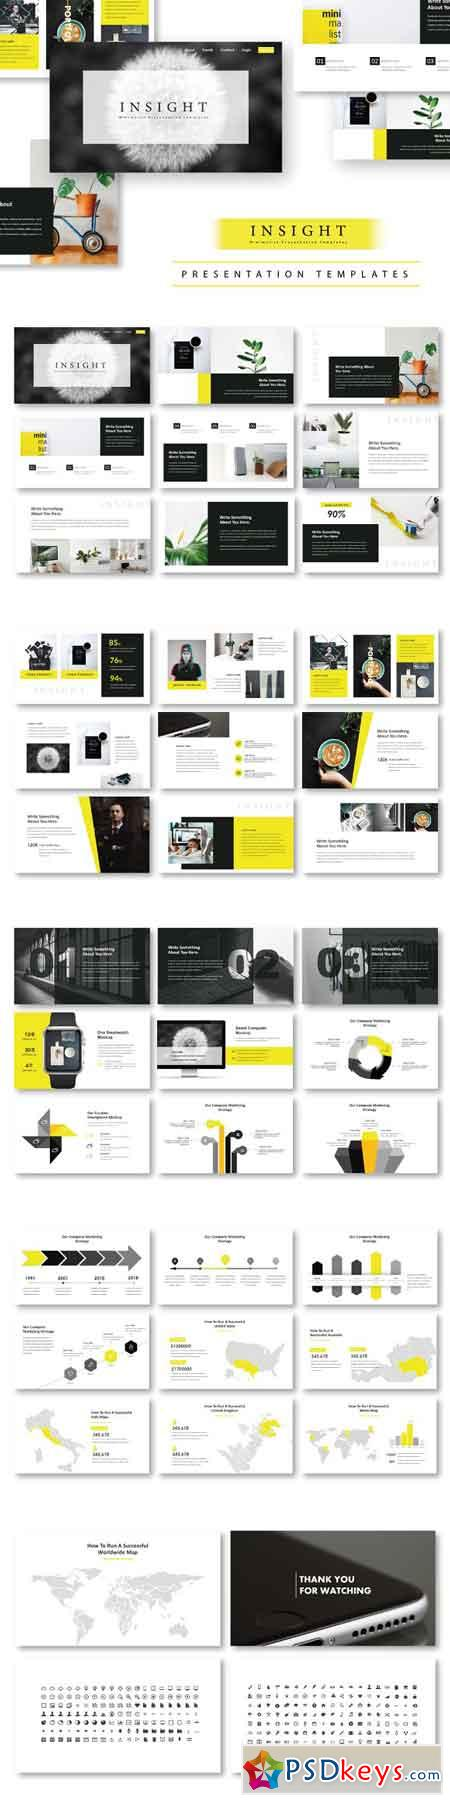 Insight Minimal PowerPoint Template 2901867